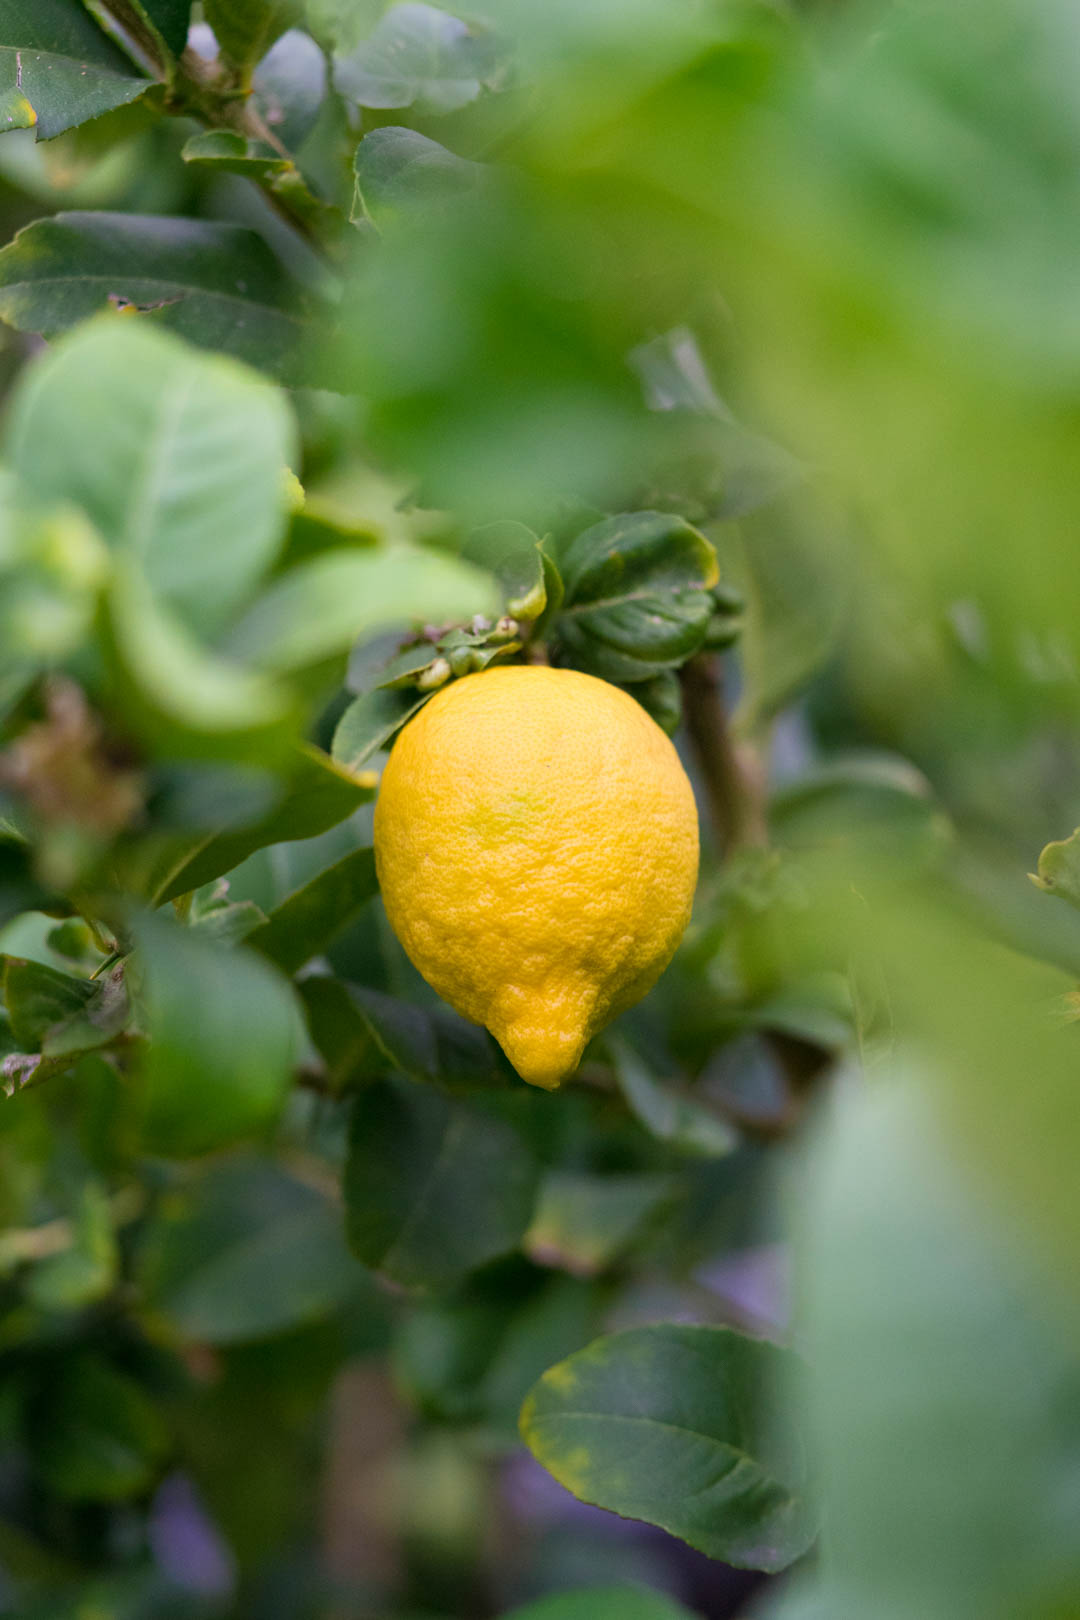 a yellow lemon on a lemon tree